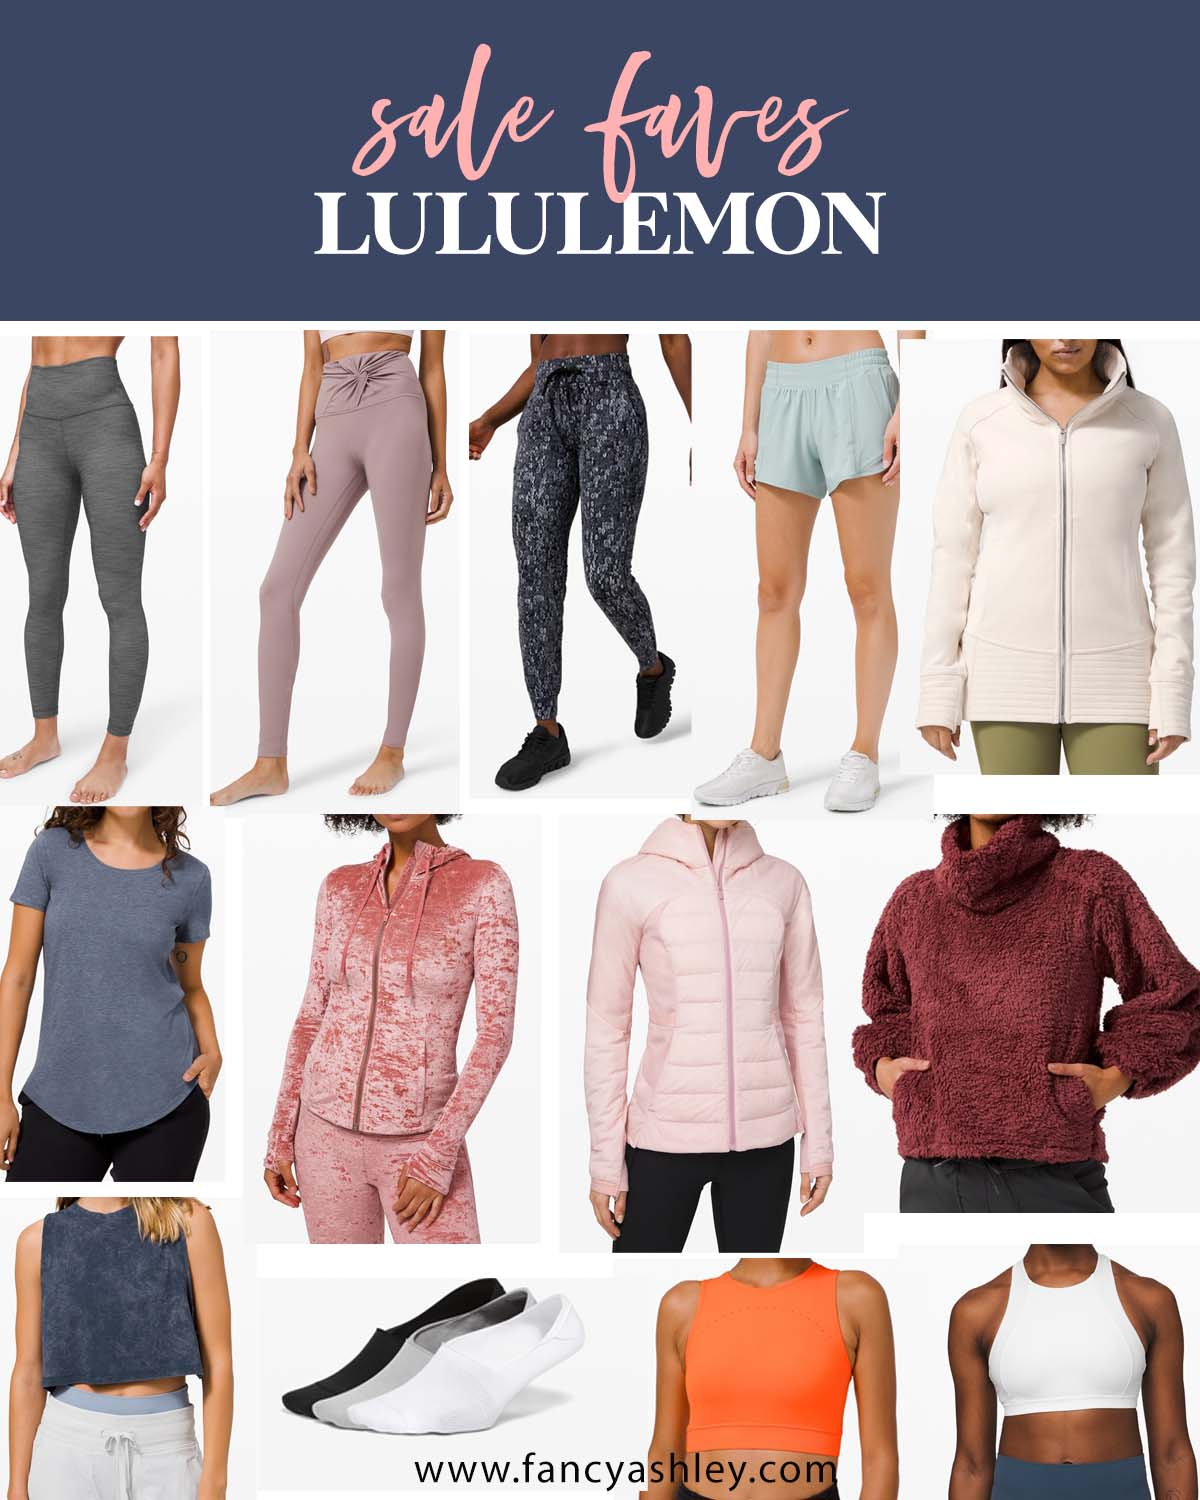 After Christmas Sales by popular Houston life and style blog, Fancy Ashley: collage image of Lululemon clothing.